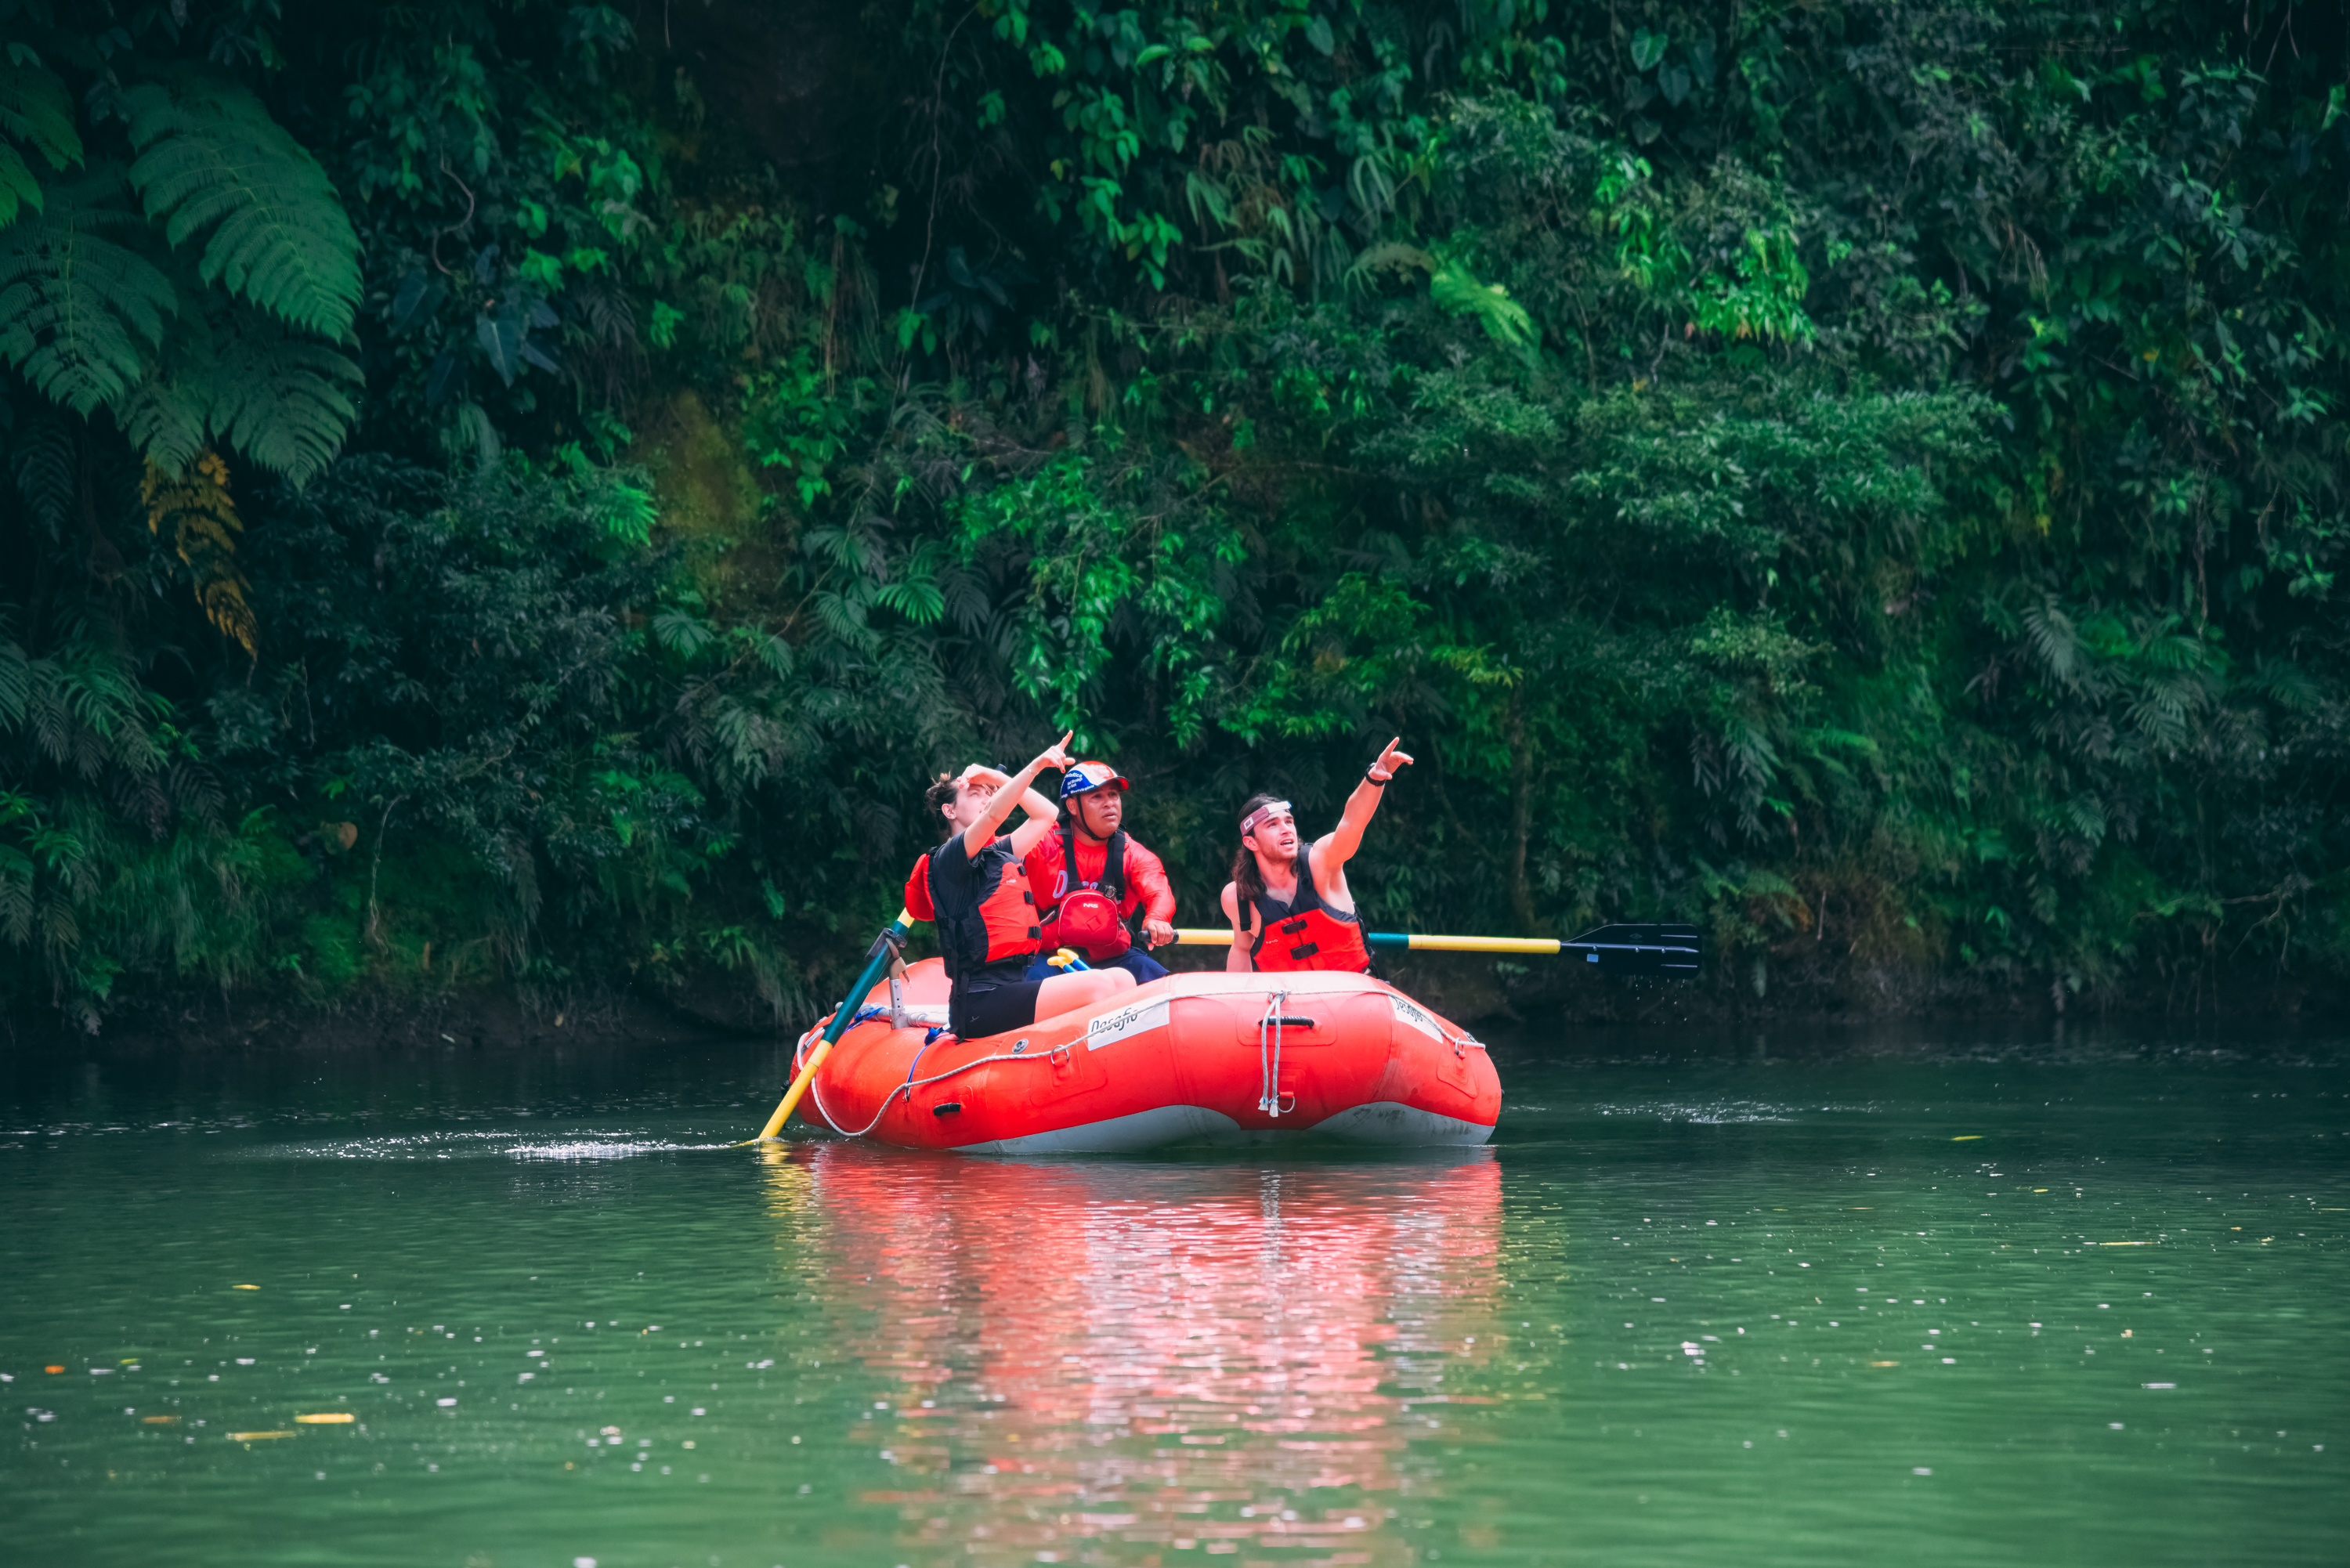 Serious Fun With Desafio Adventure Company Costa Rica!